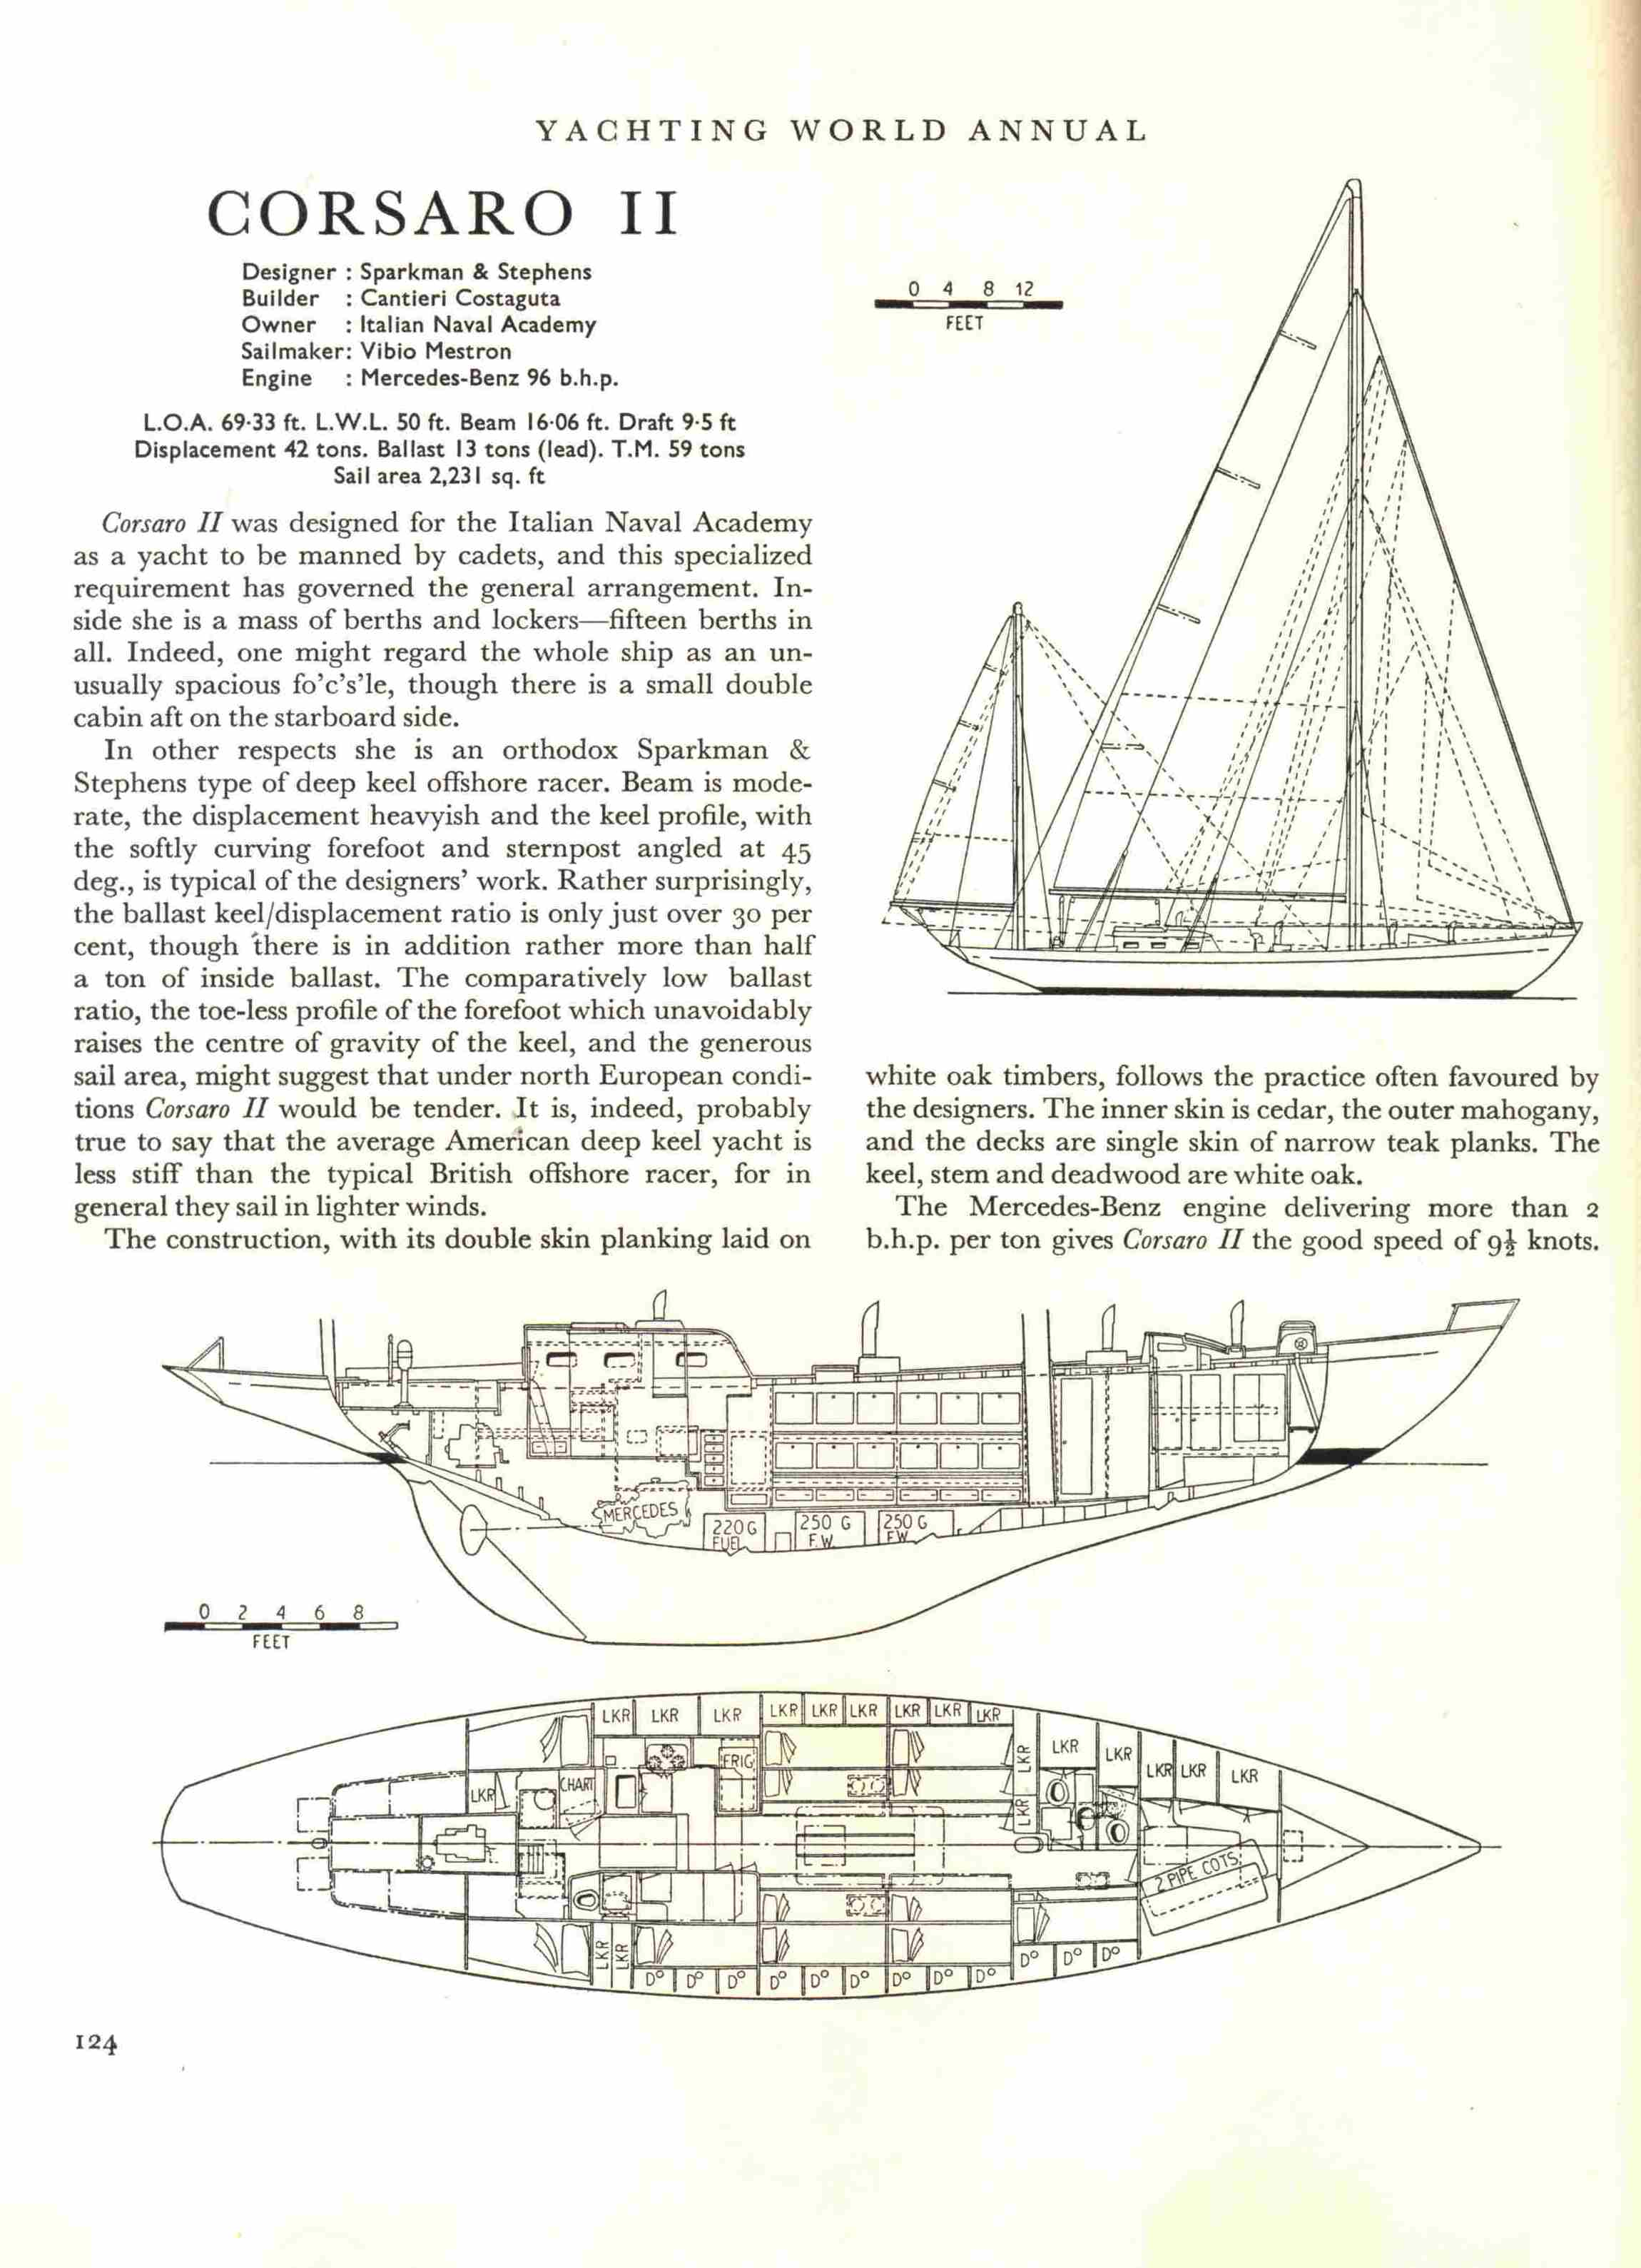 CORSARO2 Yachting World annual 1962.jpg